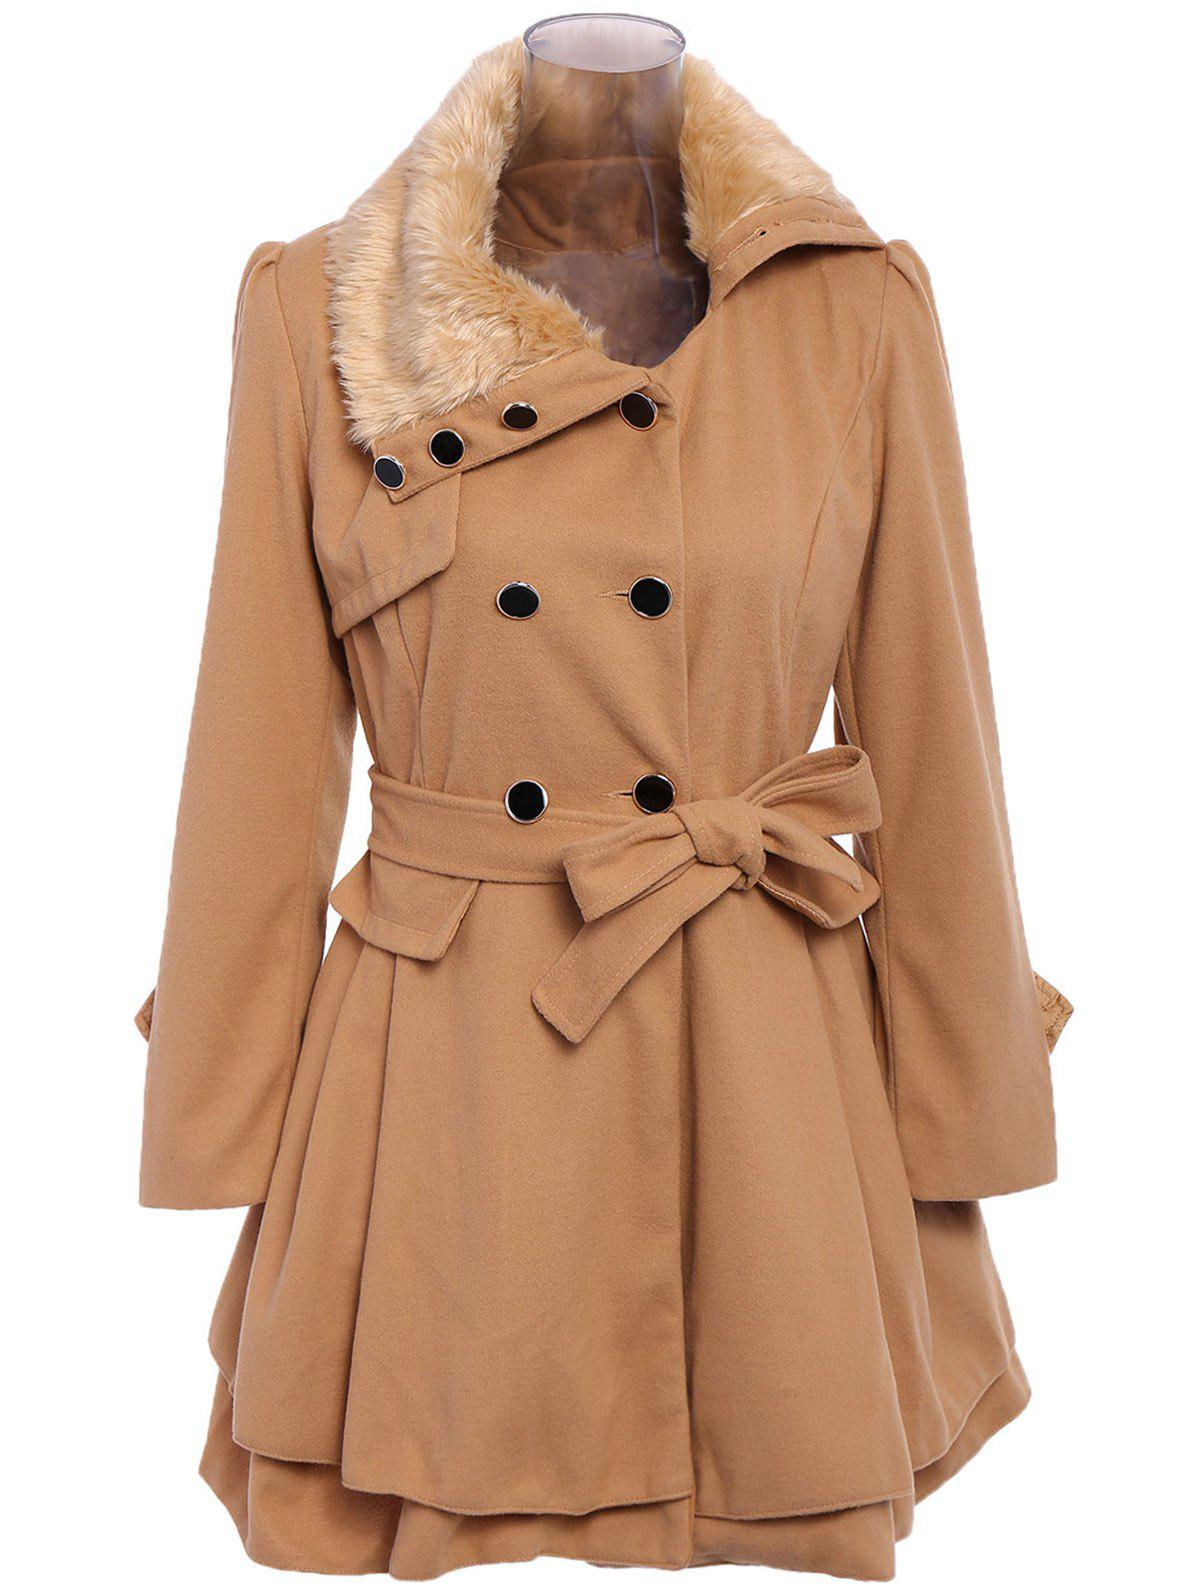 Stylish Turn-Down Neck Long Sleeve Spliced Lace-Up Button Design Women's Coat - CAMEL L